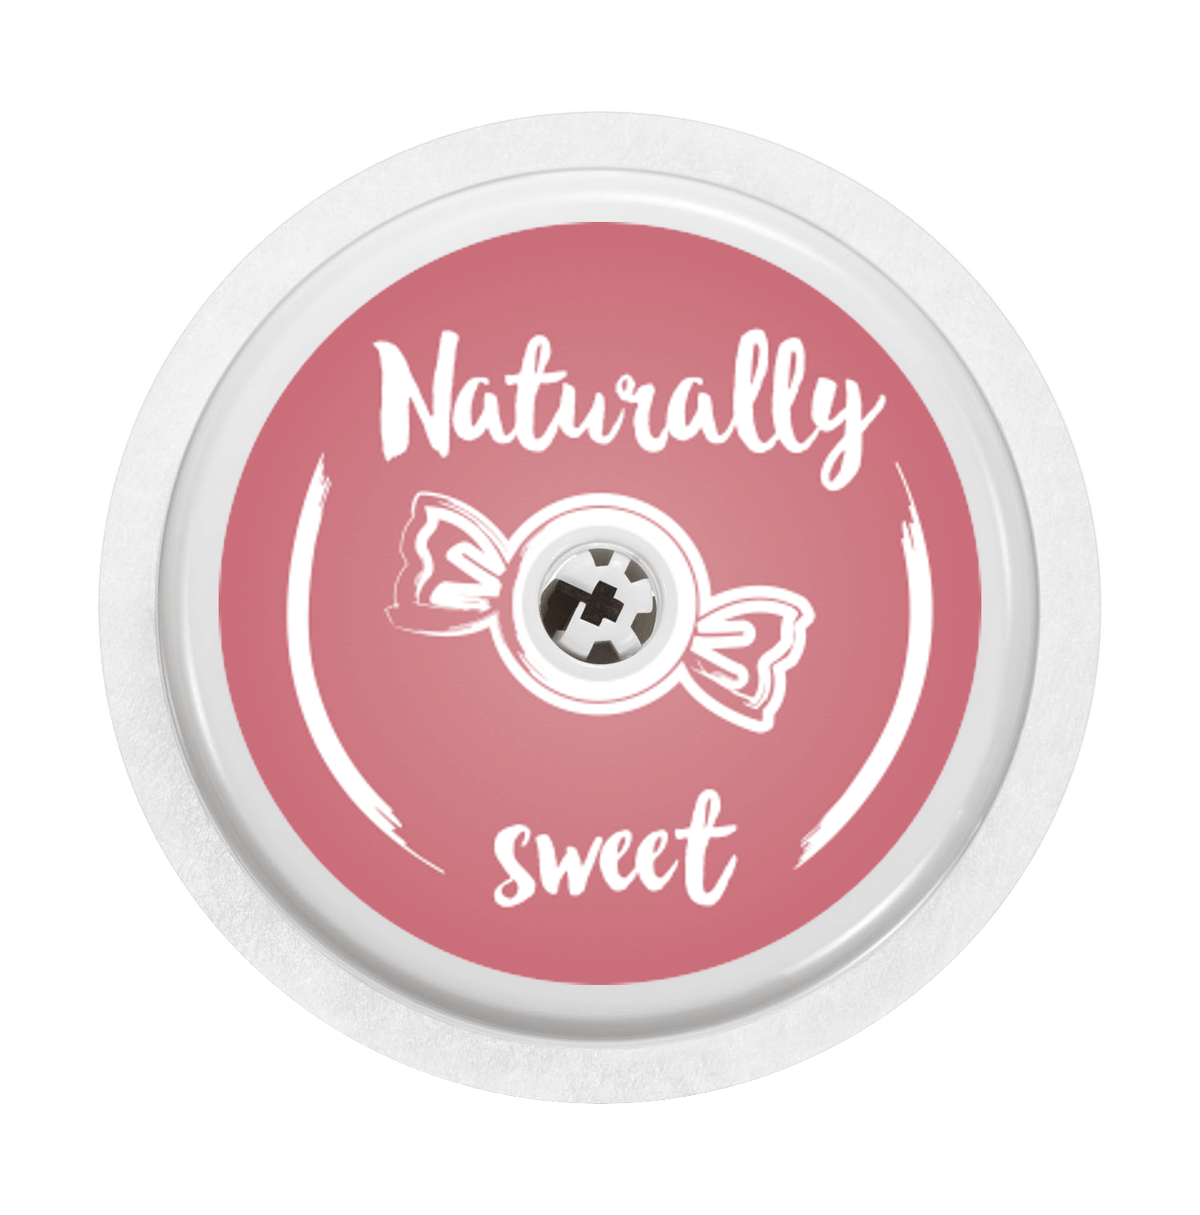 Image of Naturally Sweet Freestyle Libre Sticker